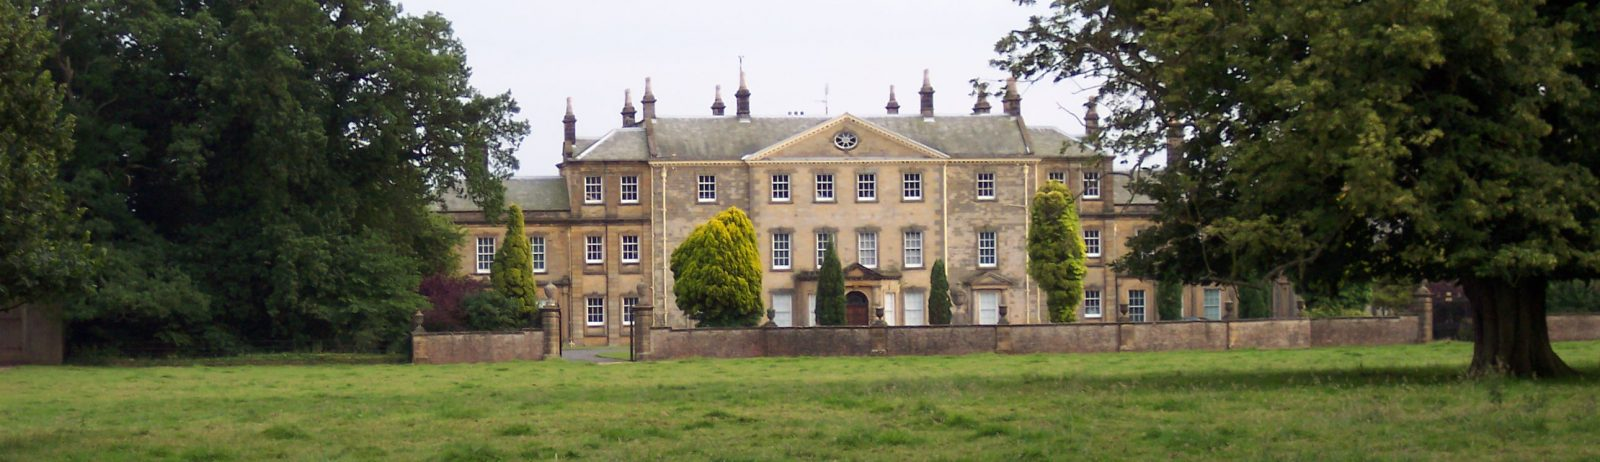 picture-of-abbey-without-cows